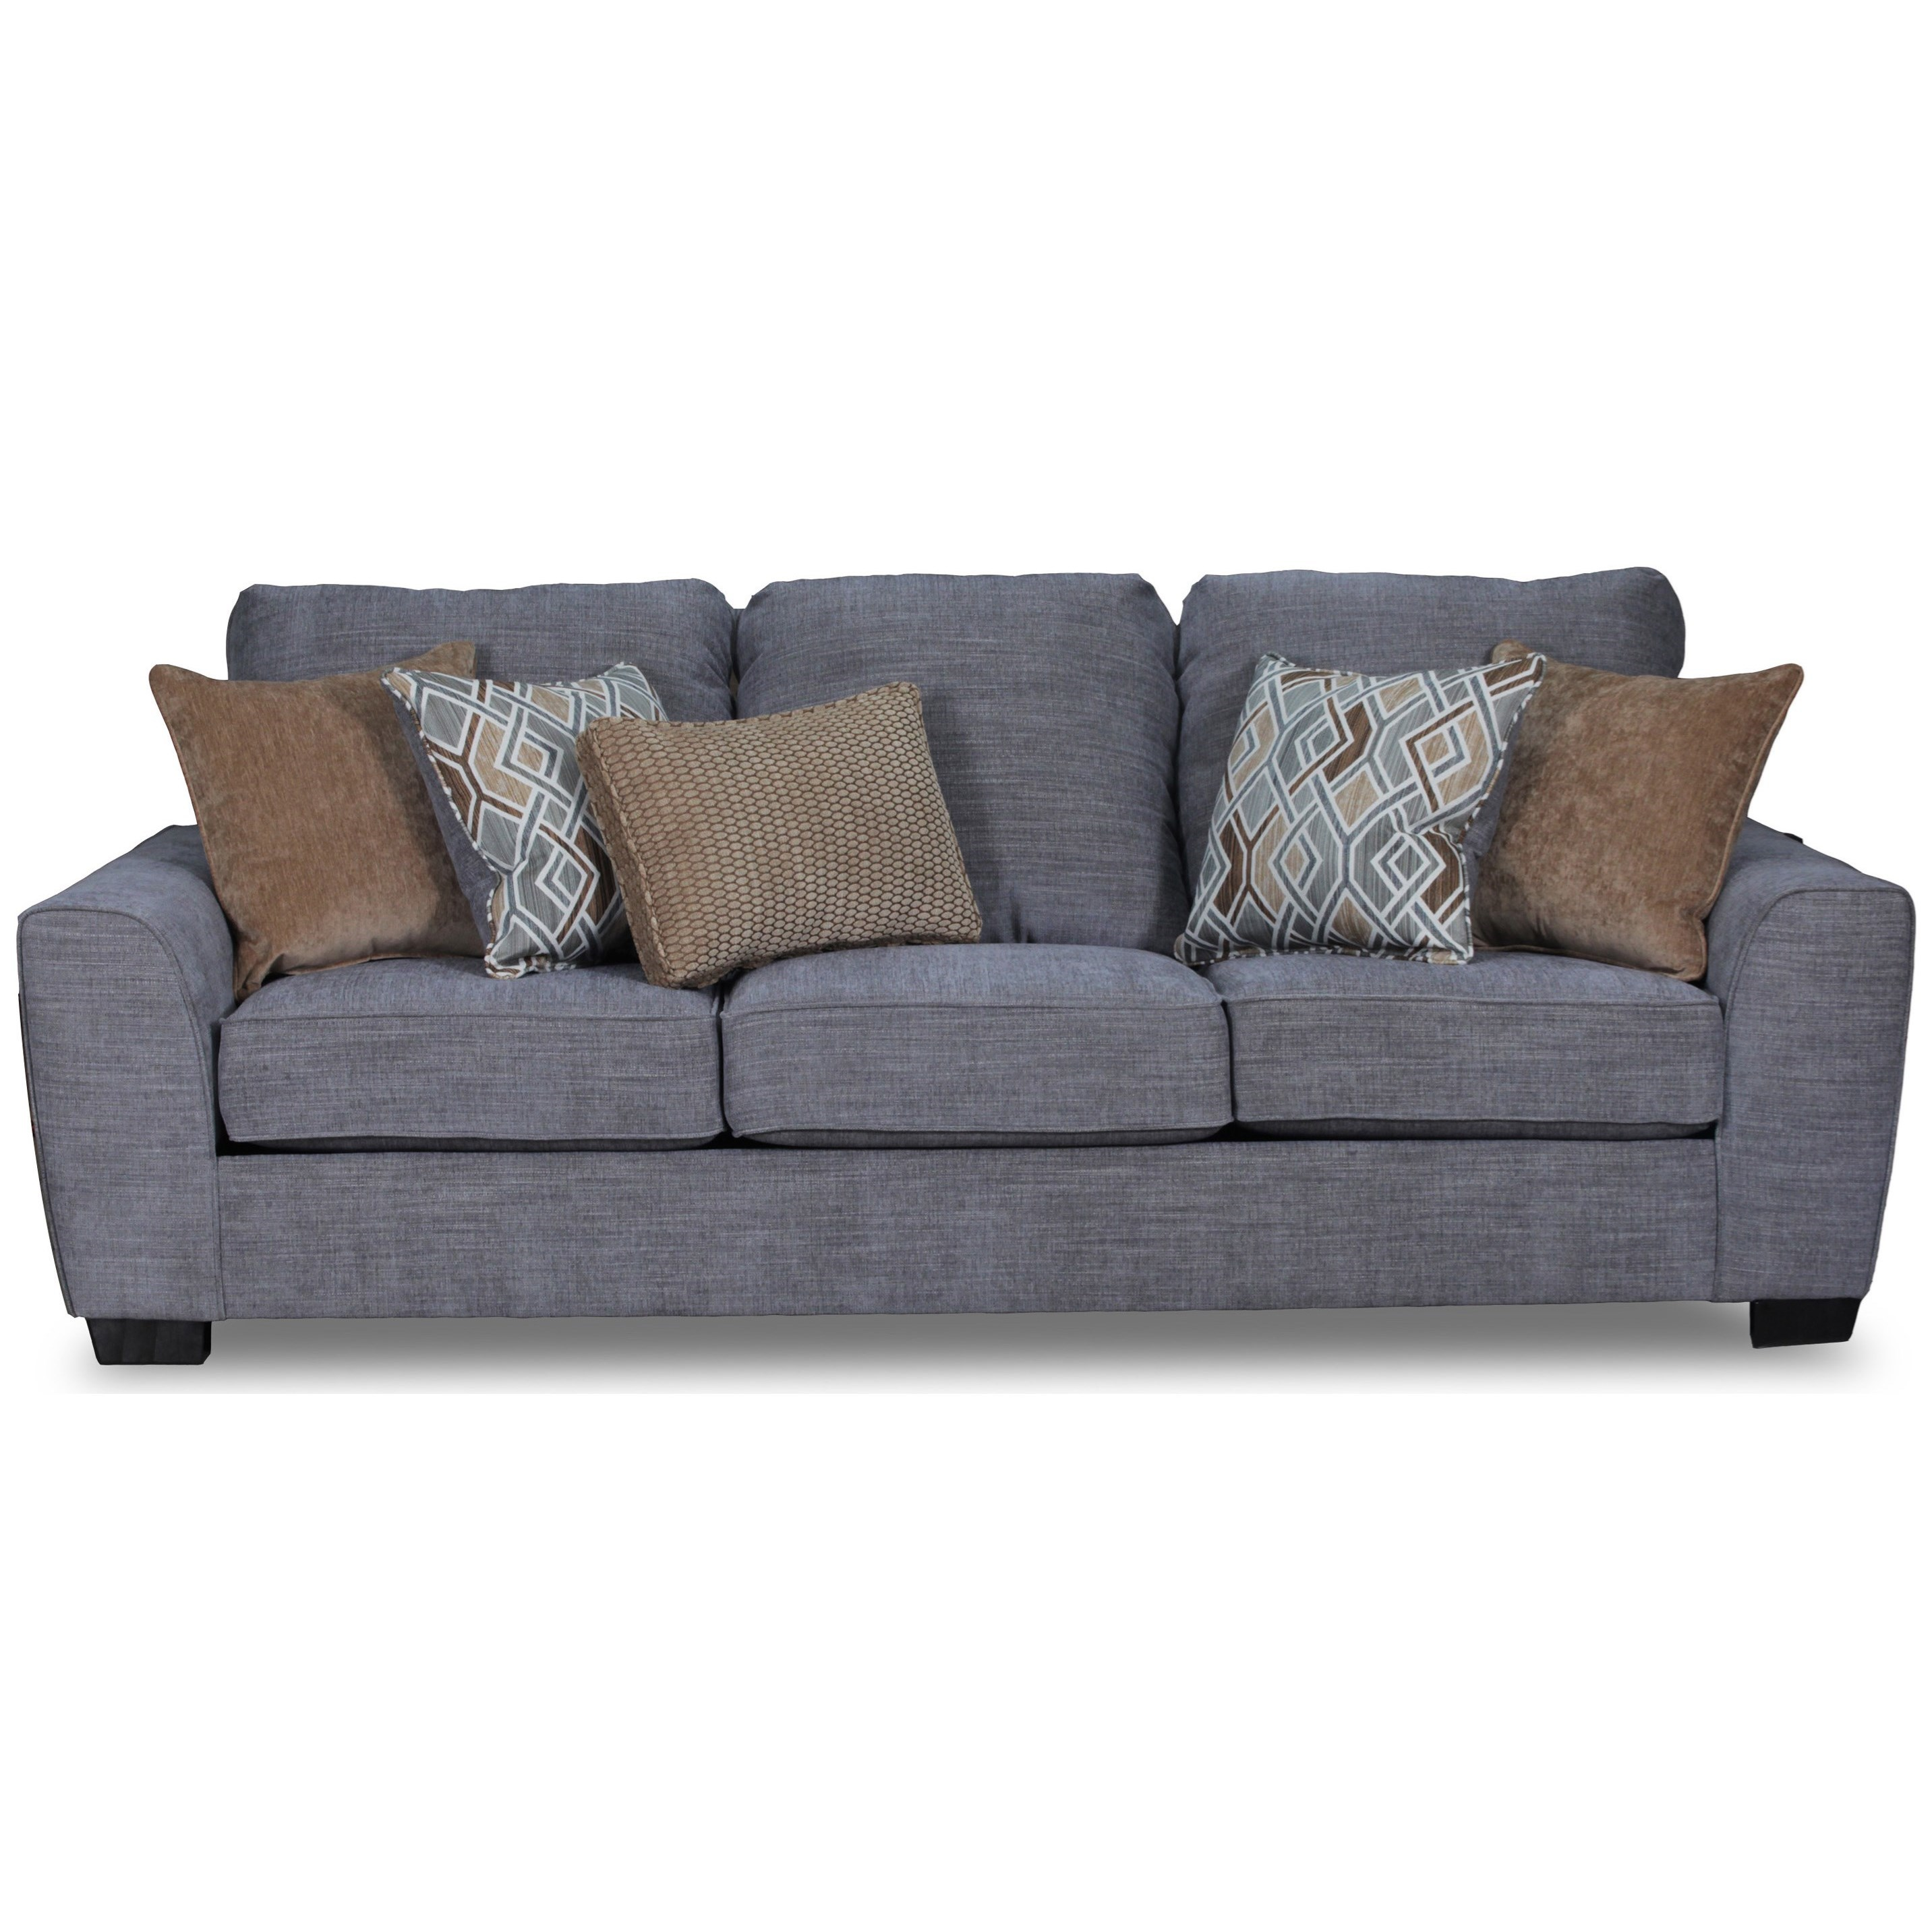 Furniture Industries: United Furniture Industries 9770BR Contemporary Sofa